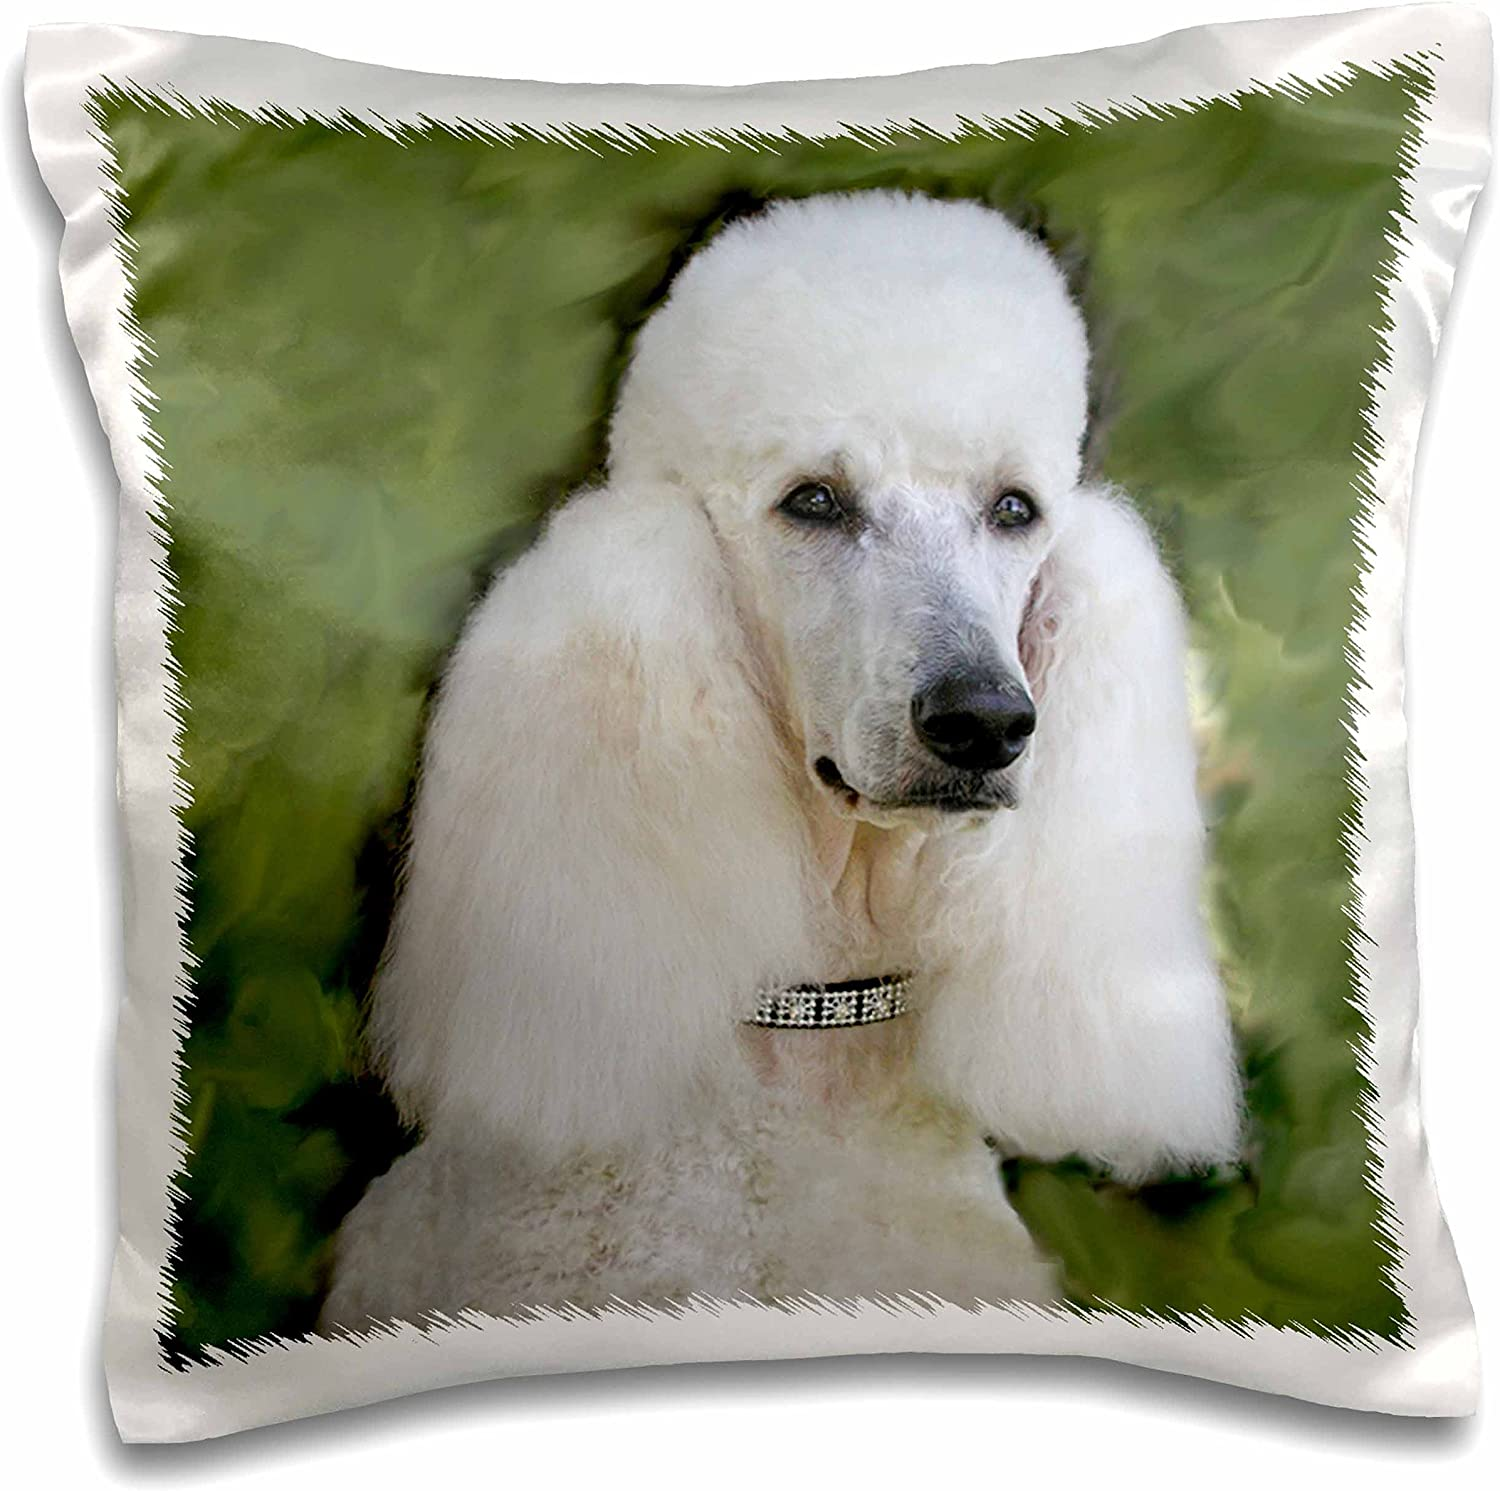 Amazon Com 3drose Standard Poodle Pillow Case 16 Inch Pc 1298 1 Arts Crafts Sewing